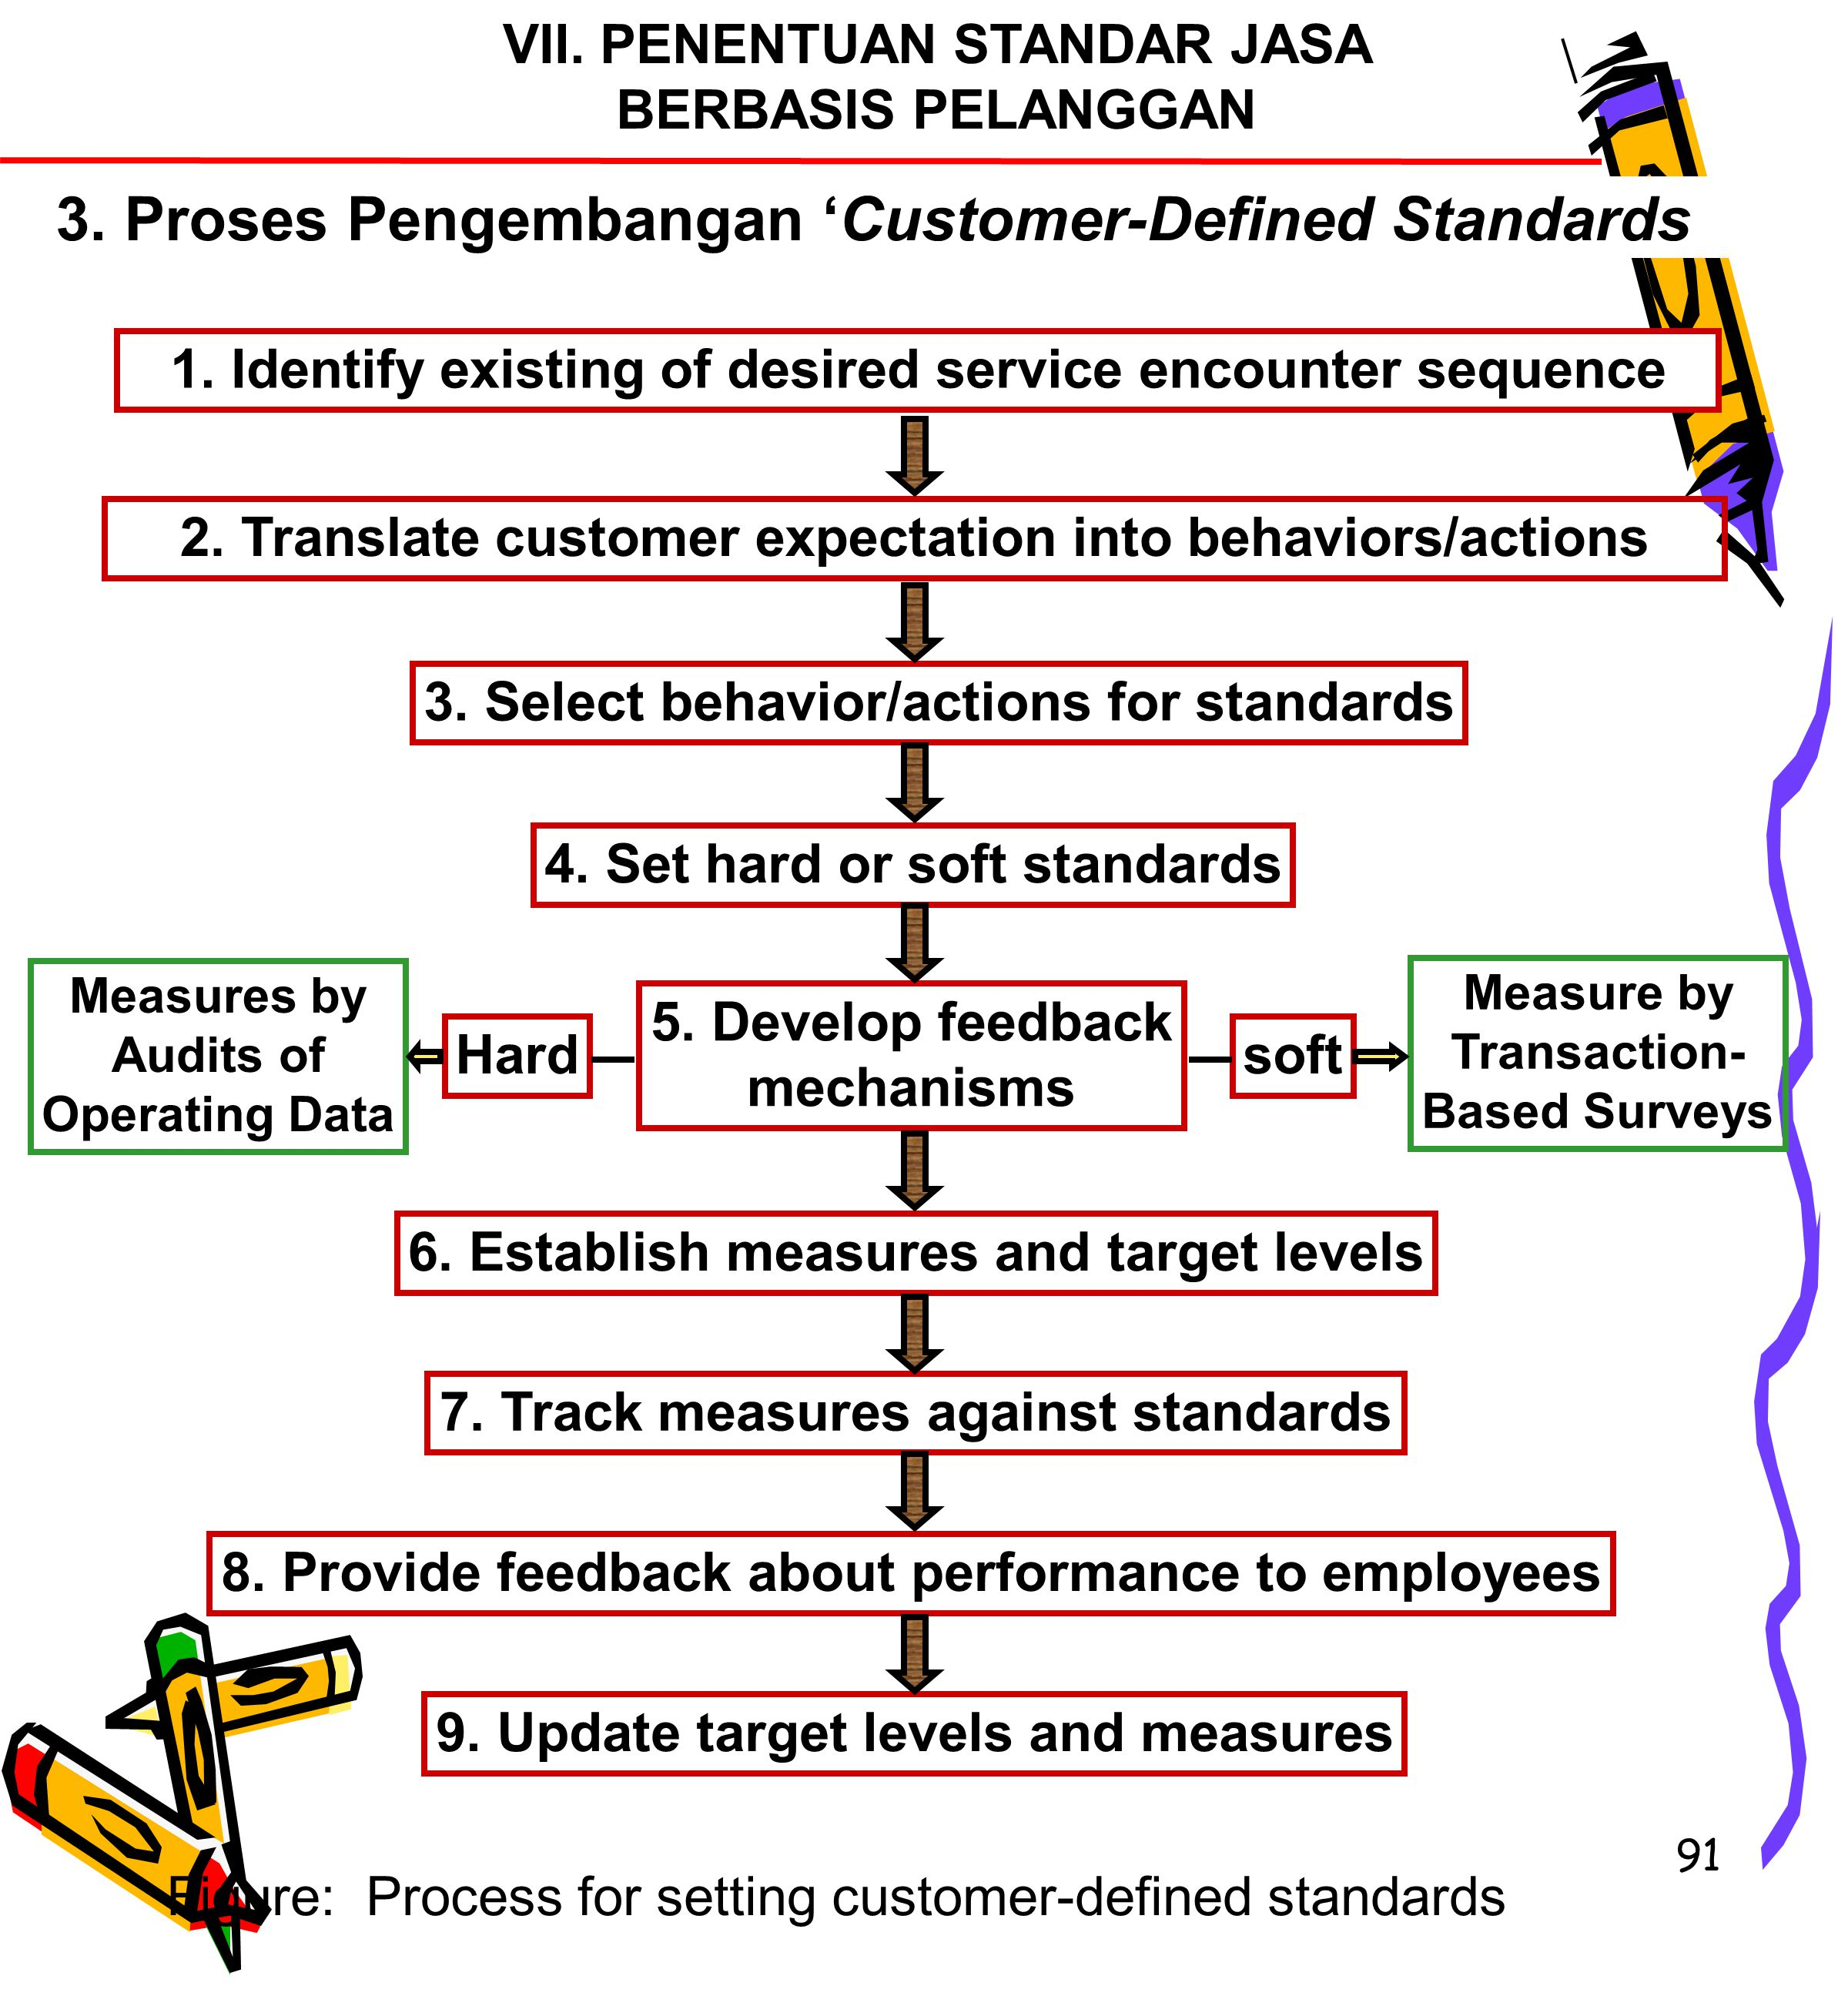 91 VII. PENENTUAN STANDAR JASA BERBASIS PELANGGAN 3. Proses Pengembangan 'Customer-Defined Standards 1. Identify existing of desired service encounter